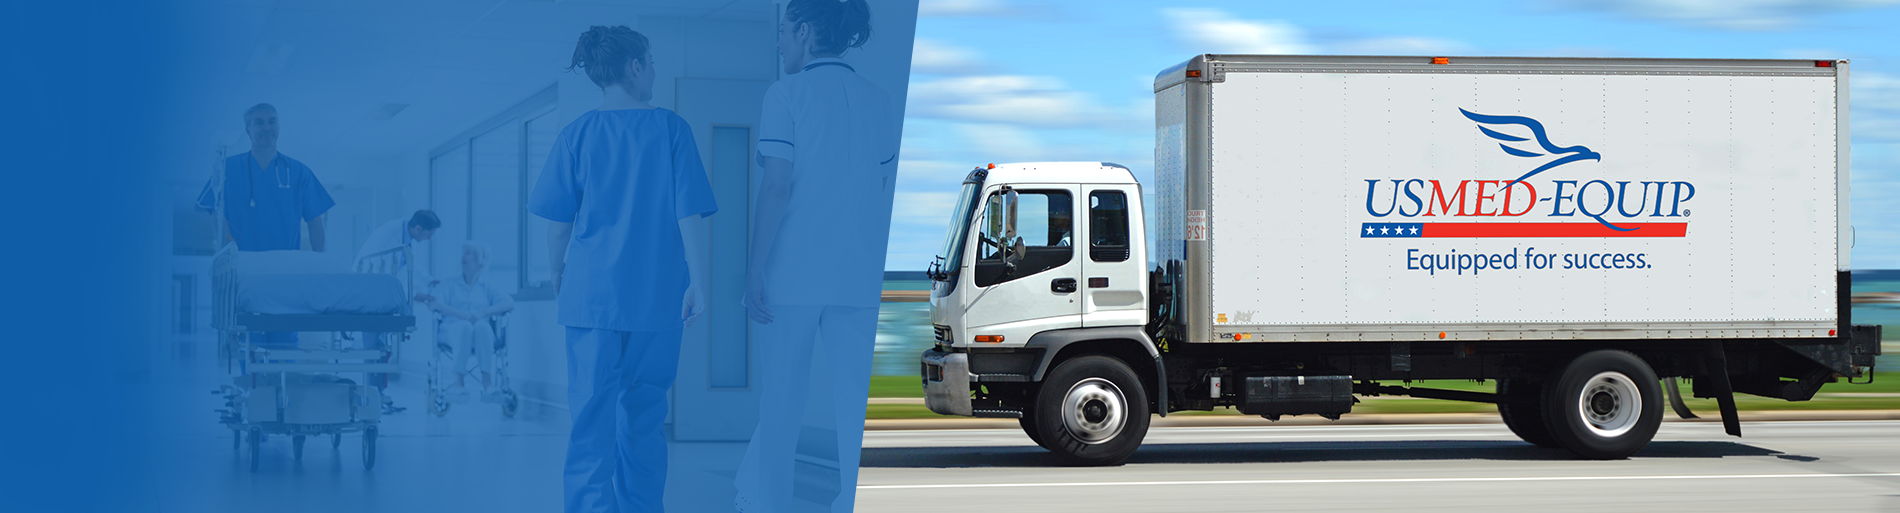 US Med-Equip is open 24/7 with a 2 Hour Delivery plus drive time commitment to meet your MME rental needs